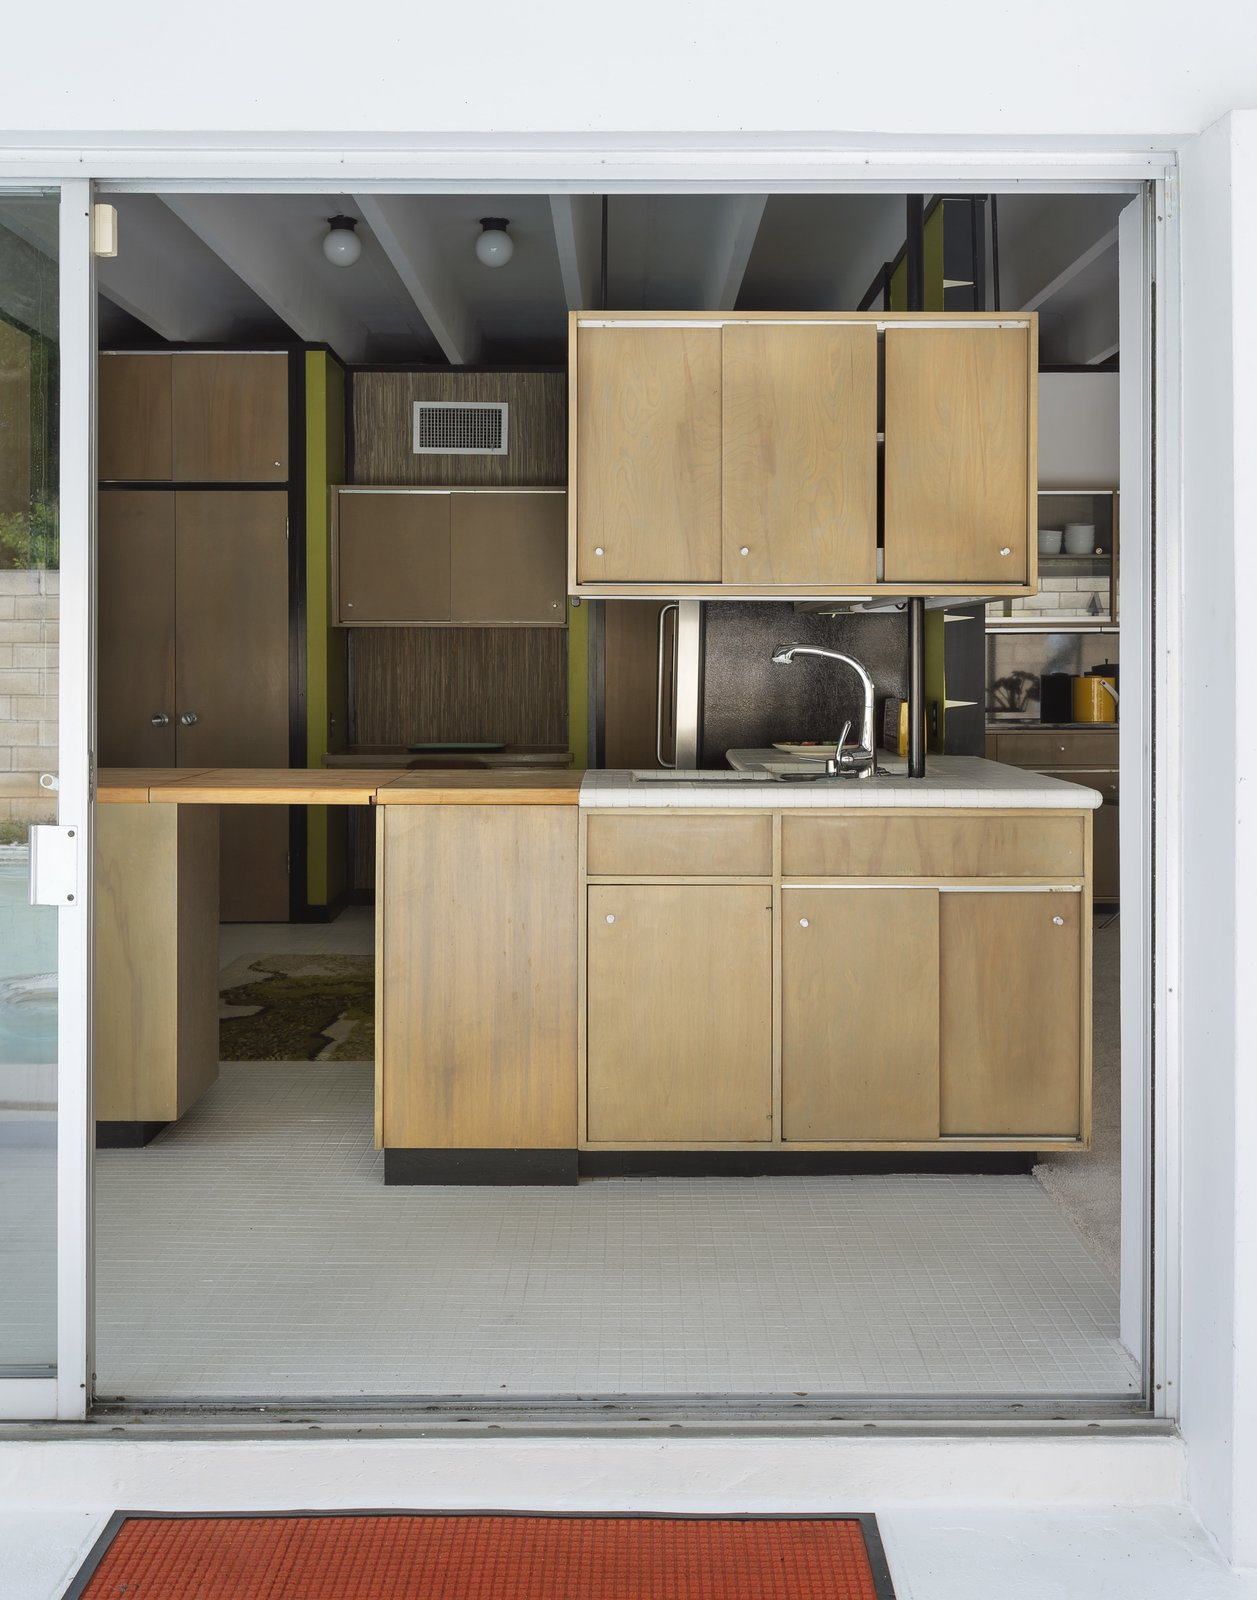 Kitchen and Wood Cabinet The kitchen cabinets are original.  The Ellison House from Pop Art, Street Art, and Space-Age Furniture Collide at a Painter's Midcentury Ranch Home in Florida